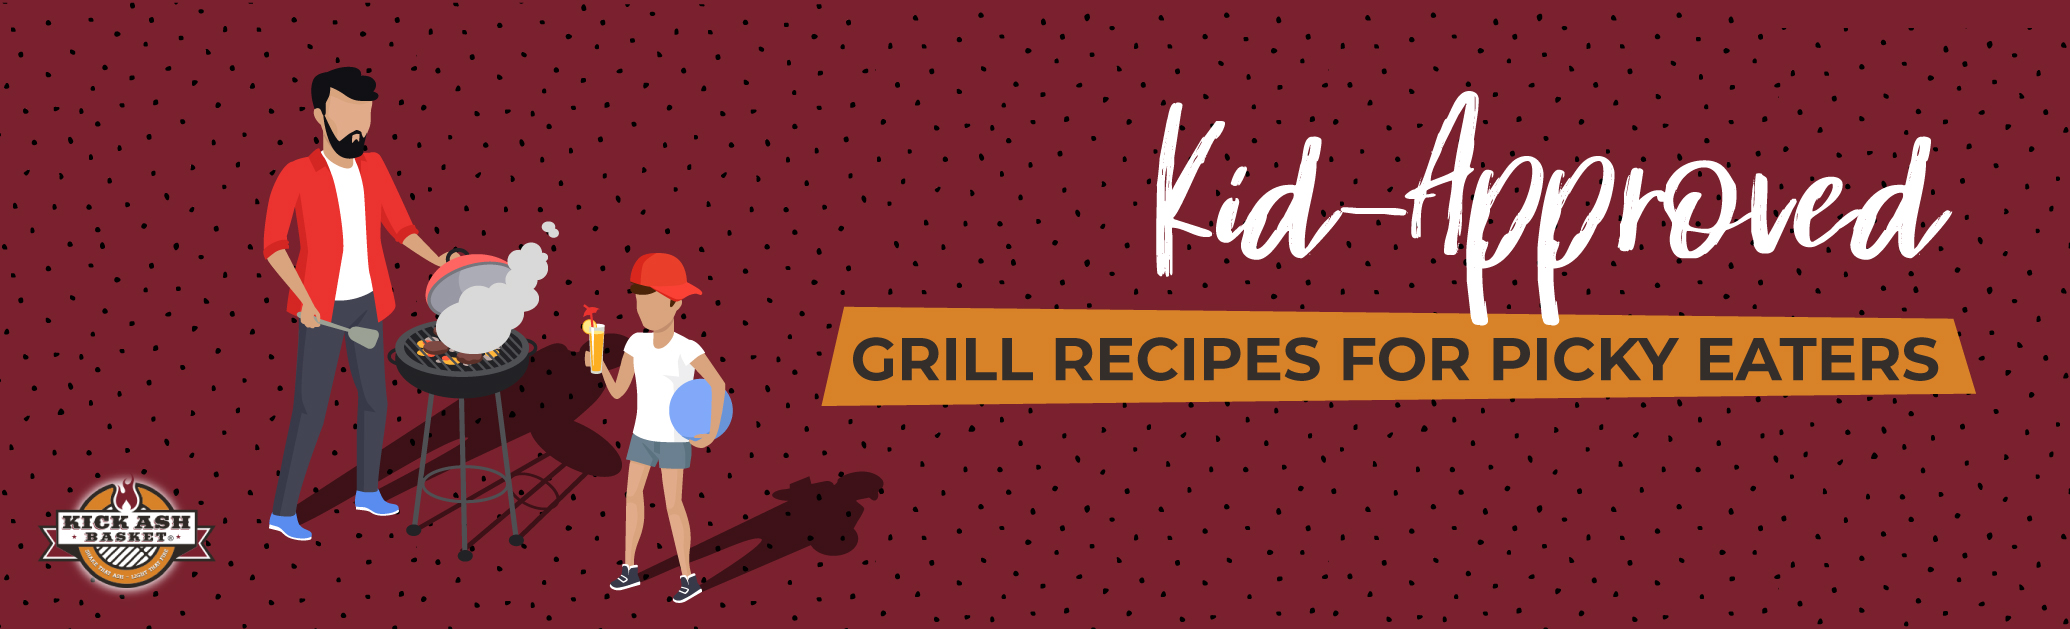 Kid-Approved Grill Recipes for Picky Eaters